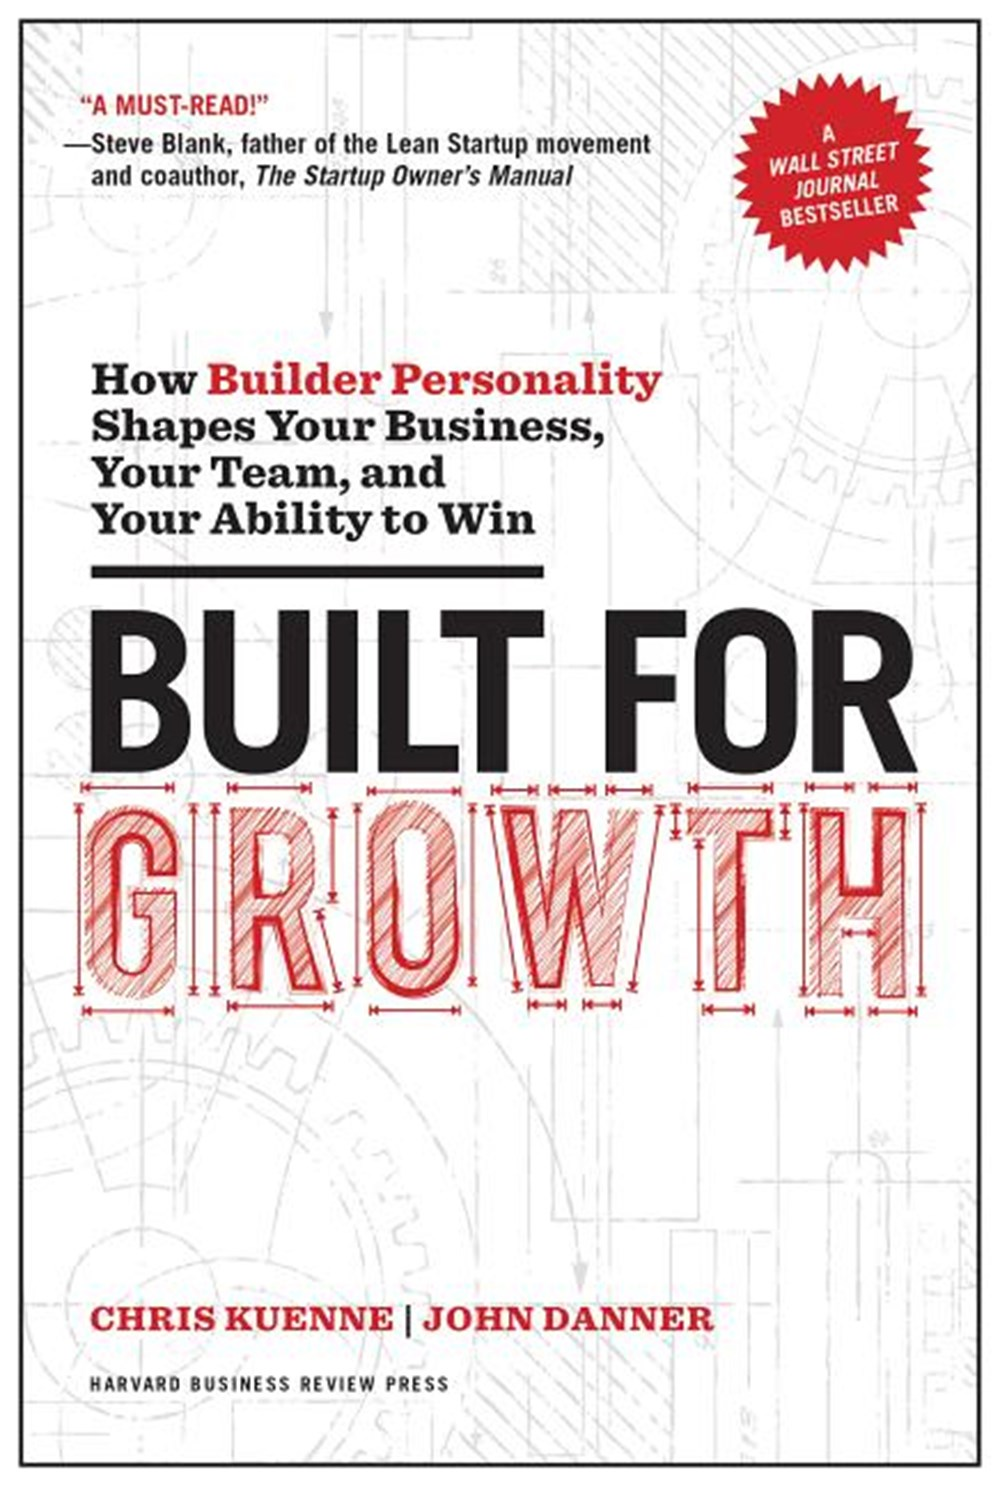 Built for Growth How Builder Personality Shapes Your Business, Your Team, and Your Ability to Win